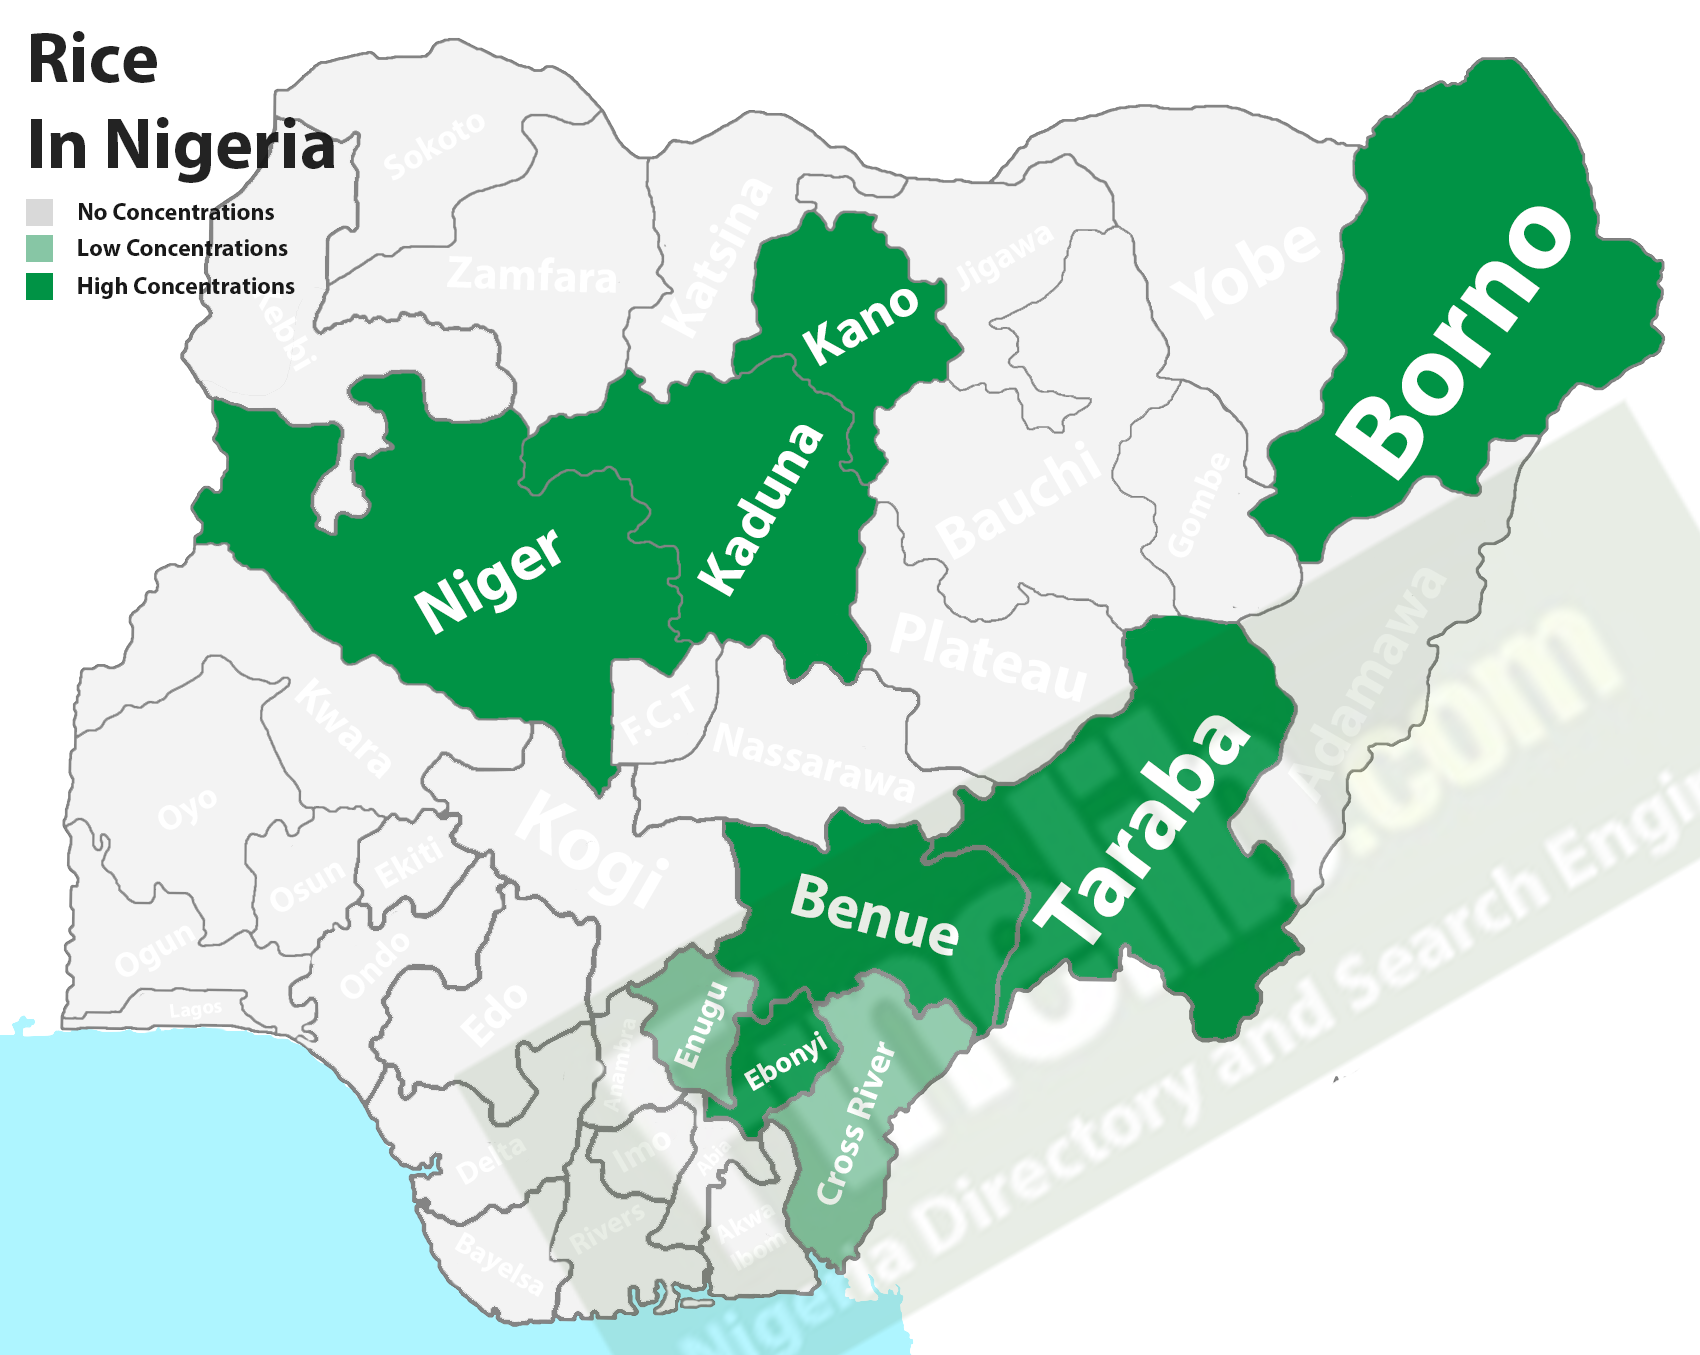 Rice producing states in Nigeria